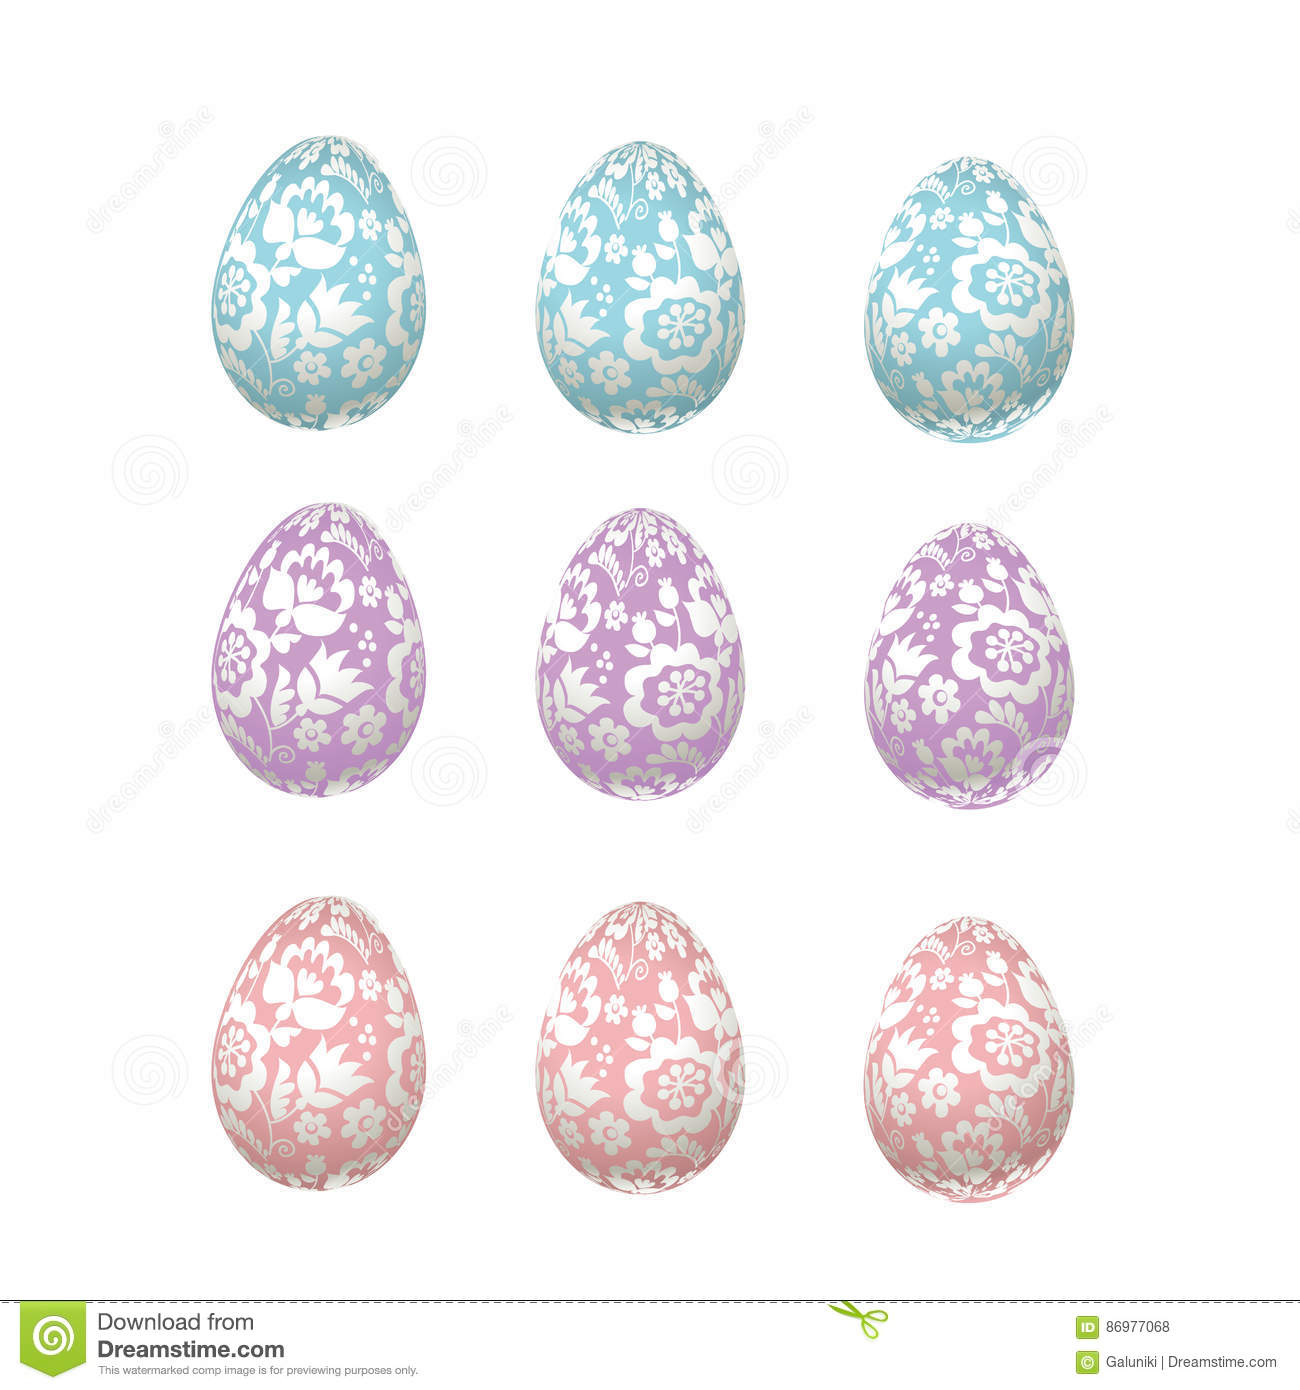 e4ab546d652 Easter egg pale color luxury decoration vector illustration. floral elegant  style decor on christian resurrection symbol. spring life icon in chick  feminine ...